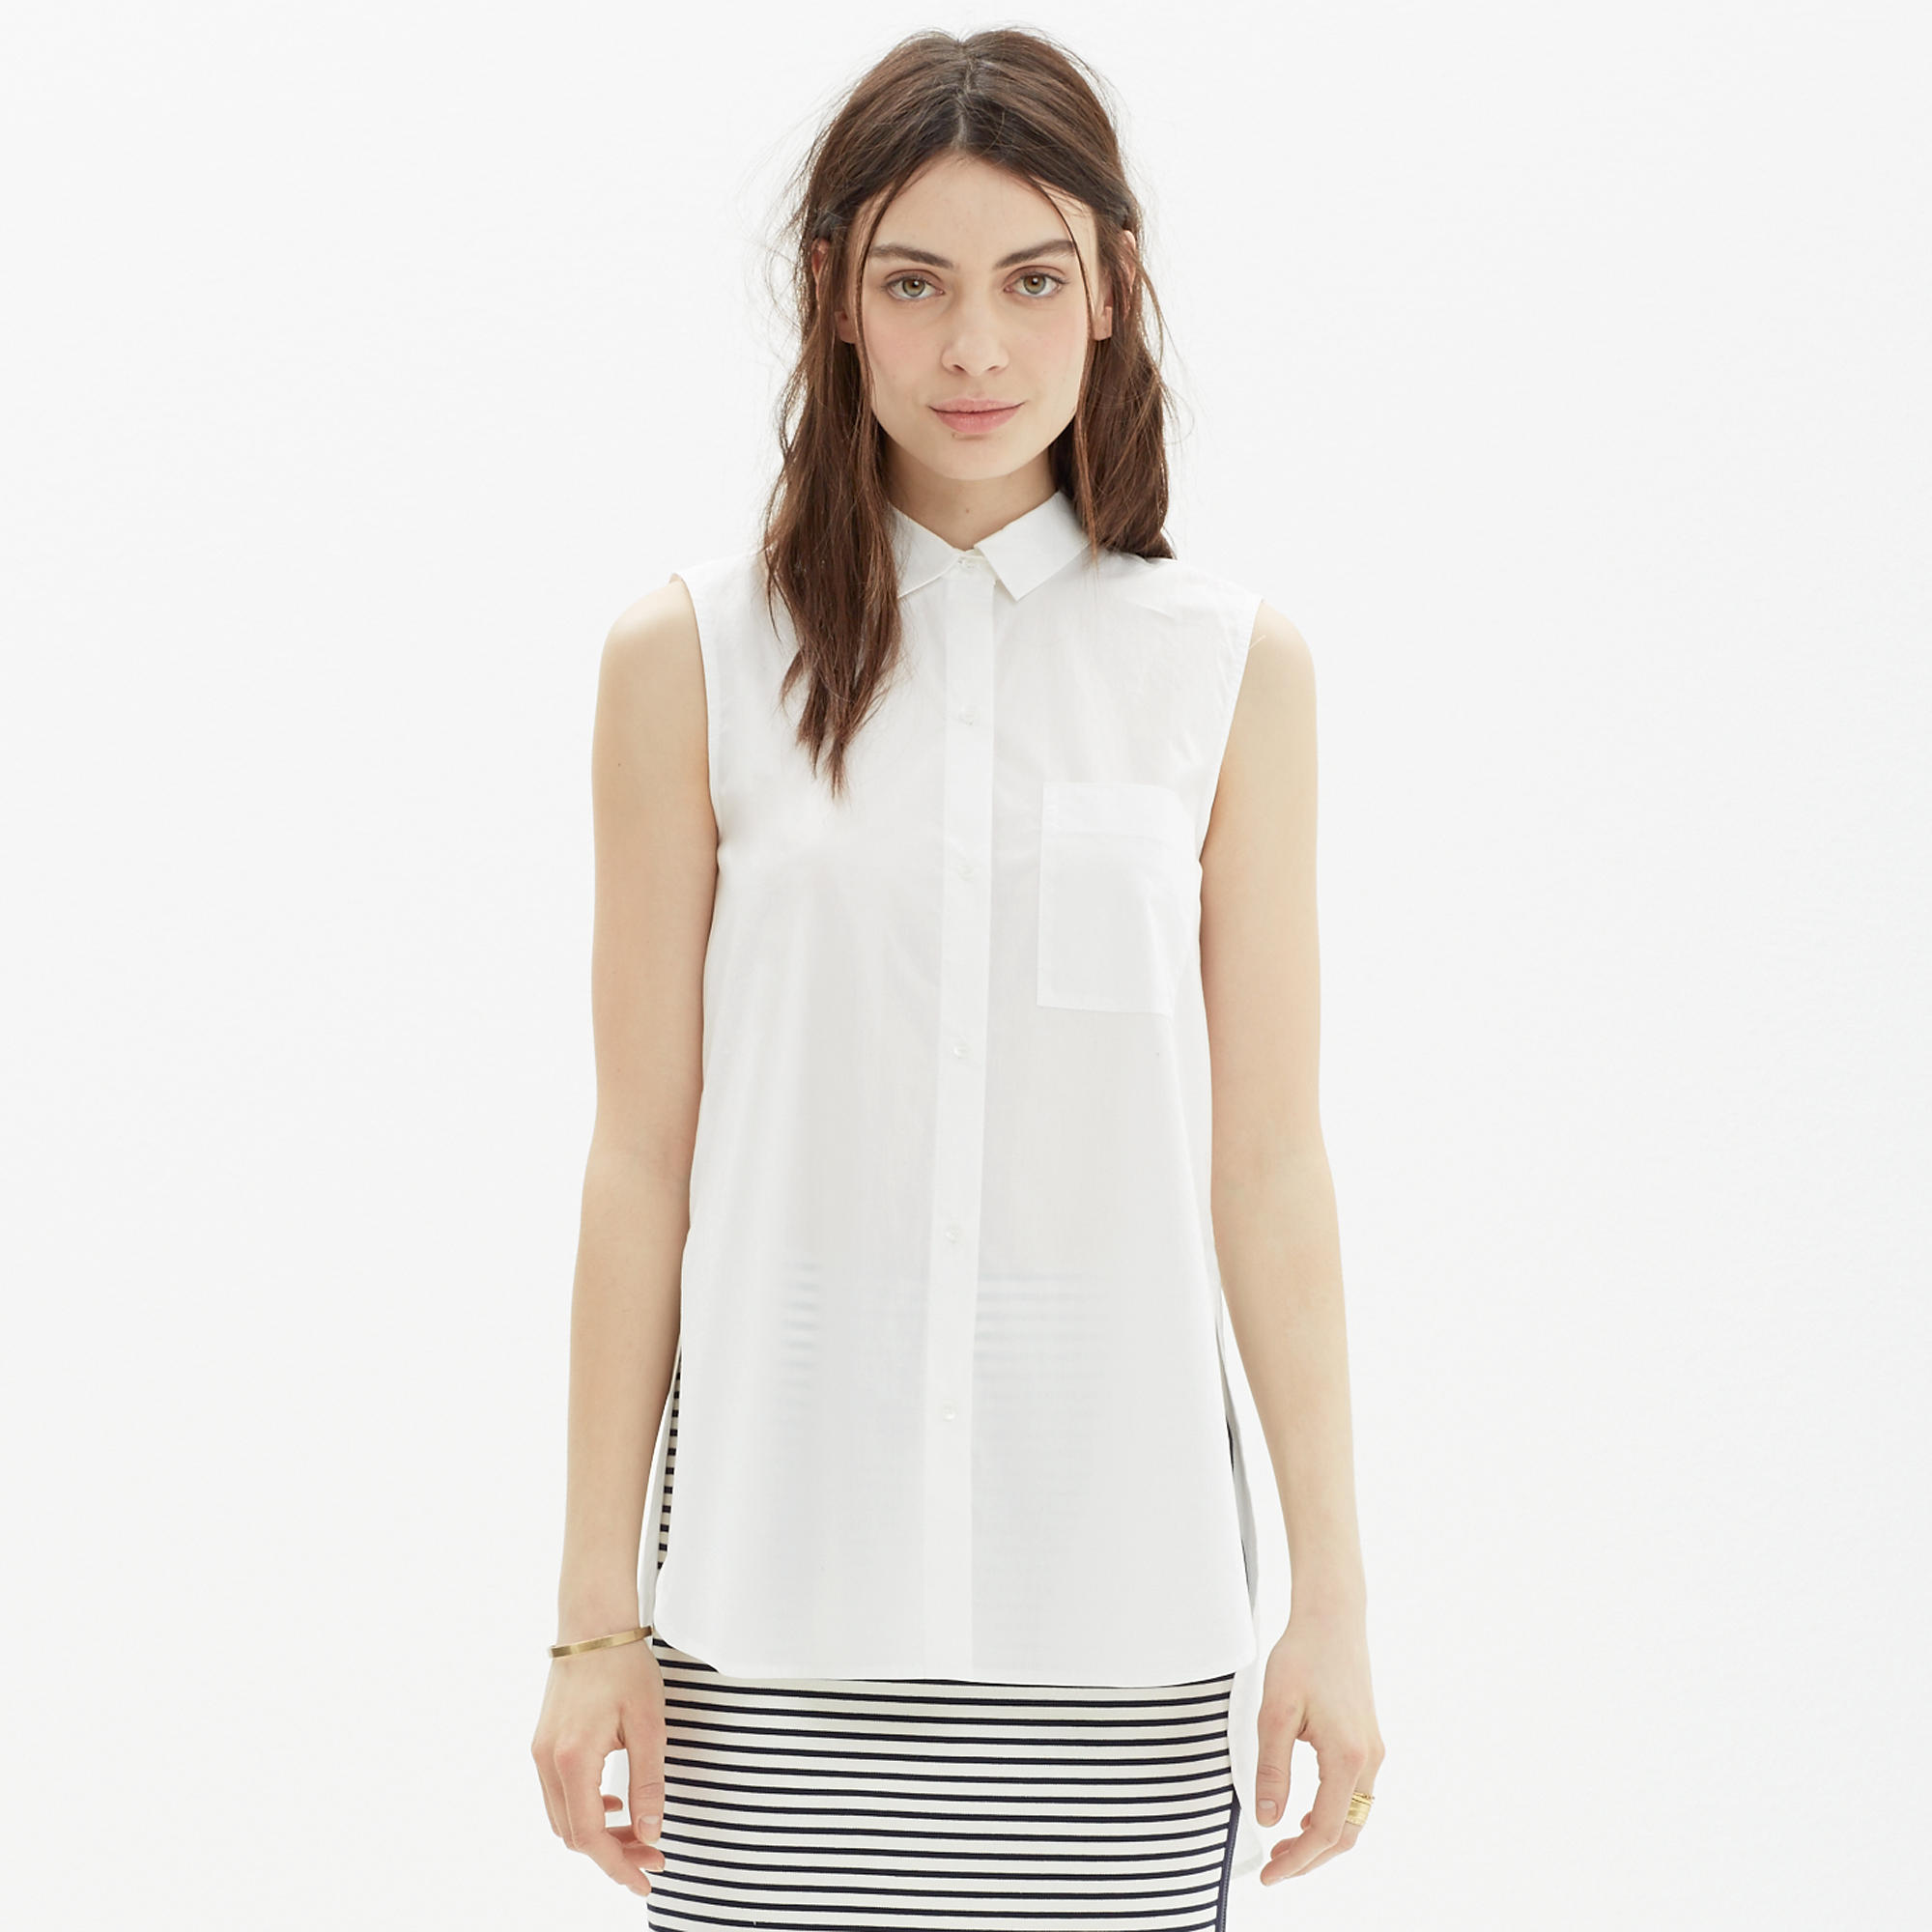 dot enlarged clothing women c top draped tops realreal l sleeveless the drapes a products